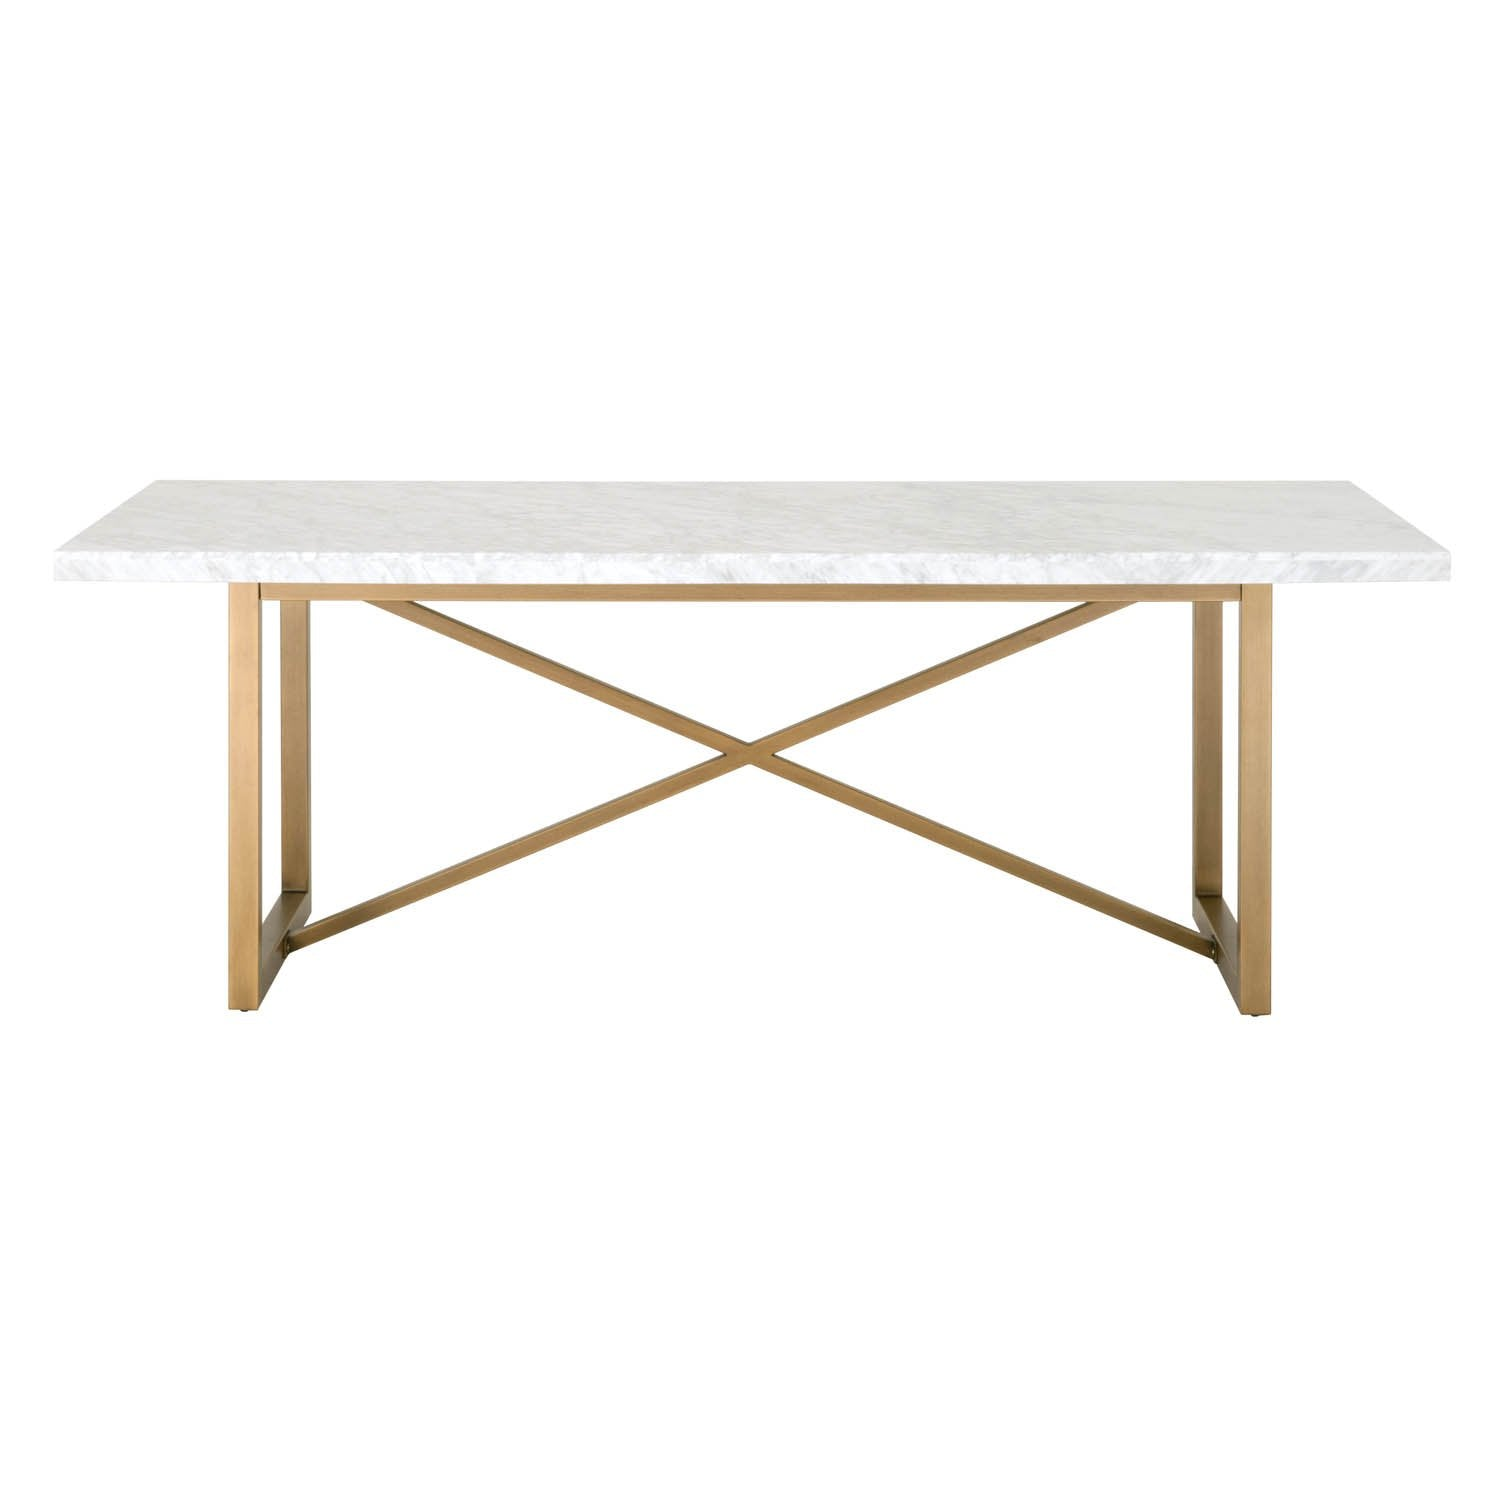 Carrera Dining Table in White Carrera Marble